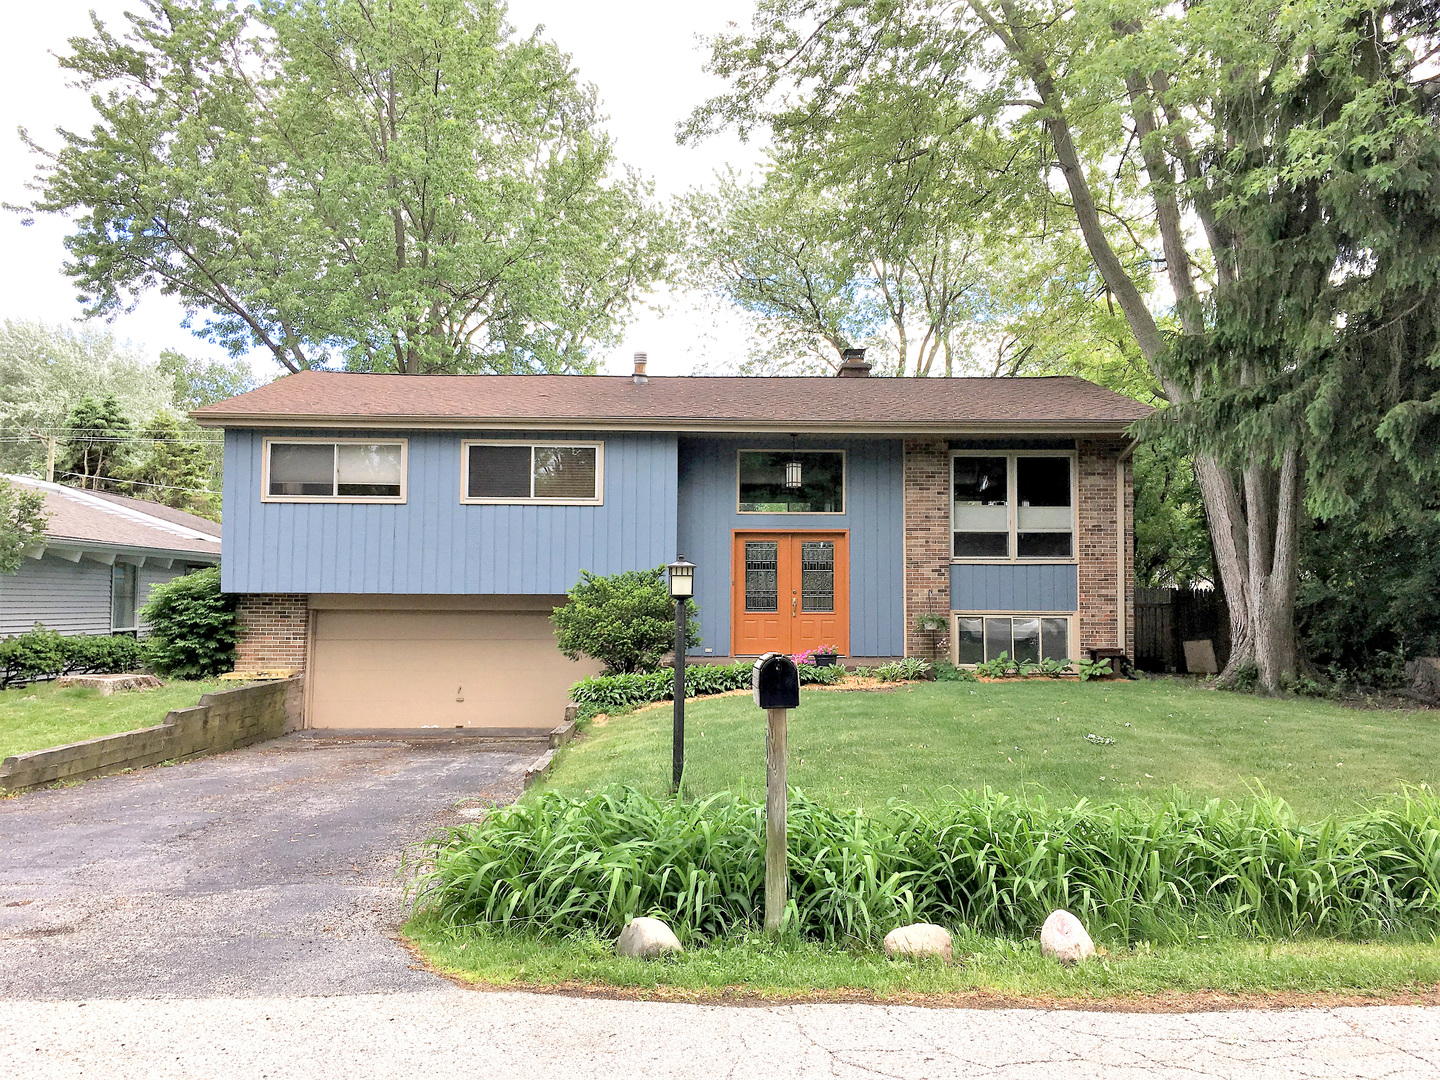 720 West Blodgett Avenue, Lake Bluff, Illinois 60044